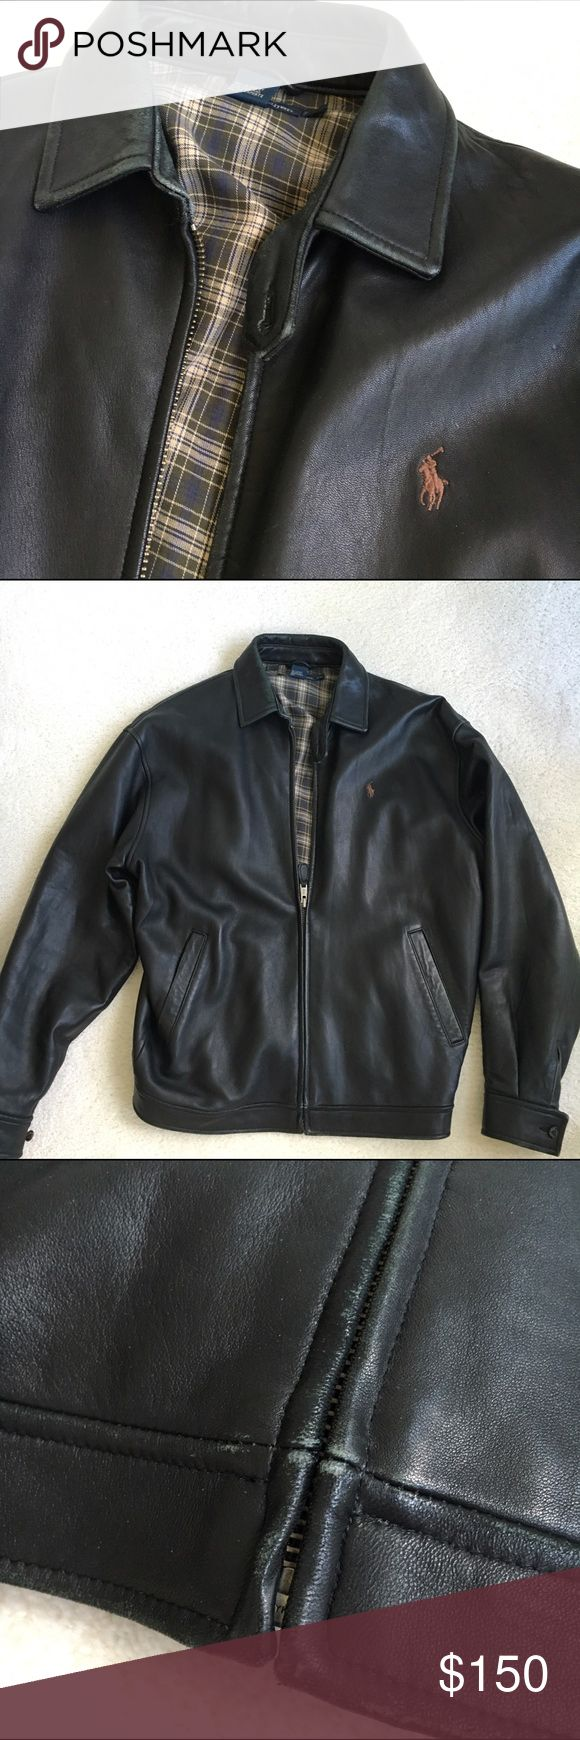 Ralph Lauren Leather jacket Black leather jacket with tan and black plaid lining and brown polo horse logo. Ralph Lauren Jackets & Coats